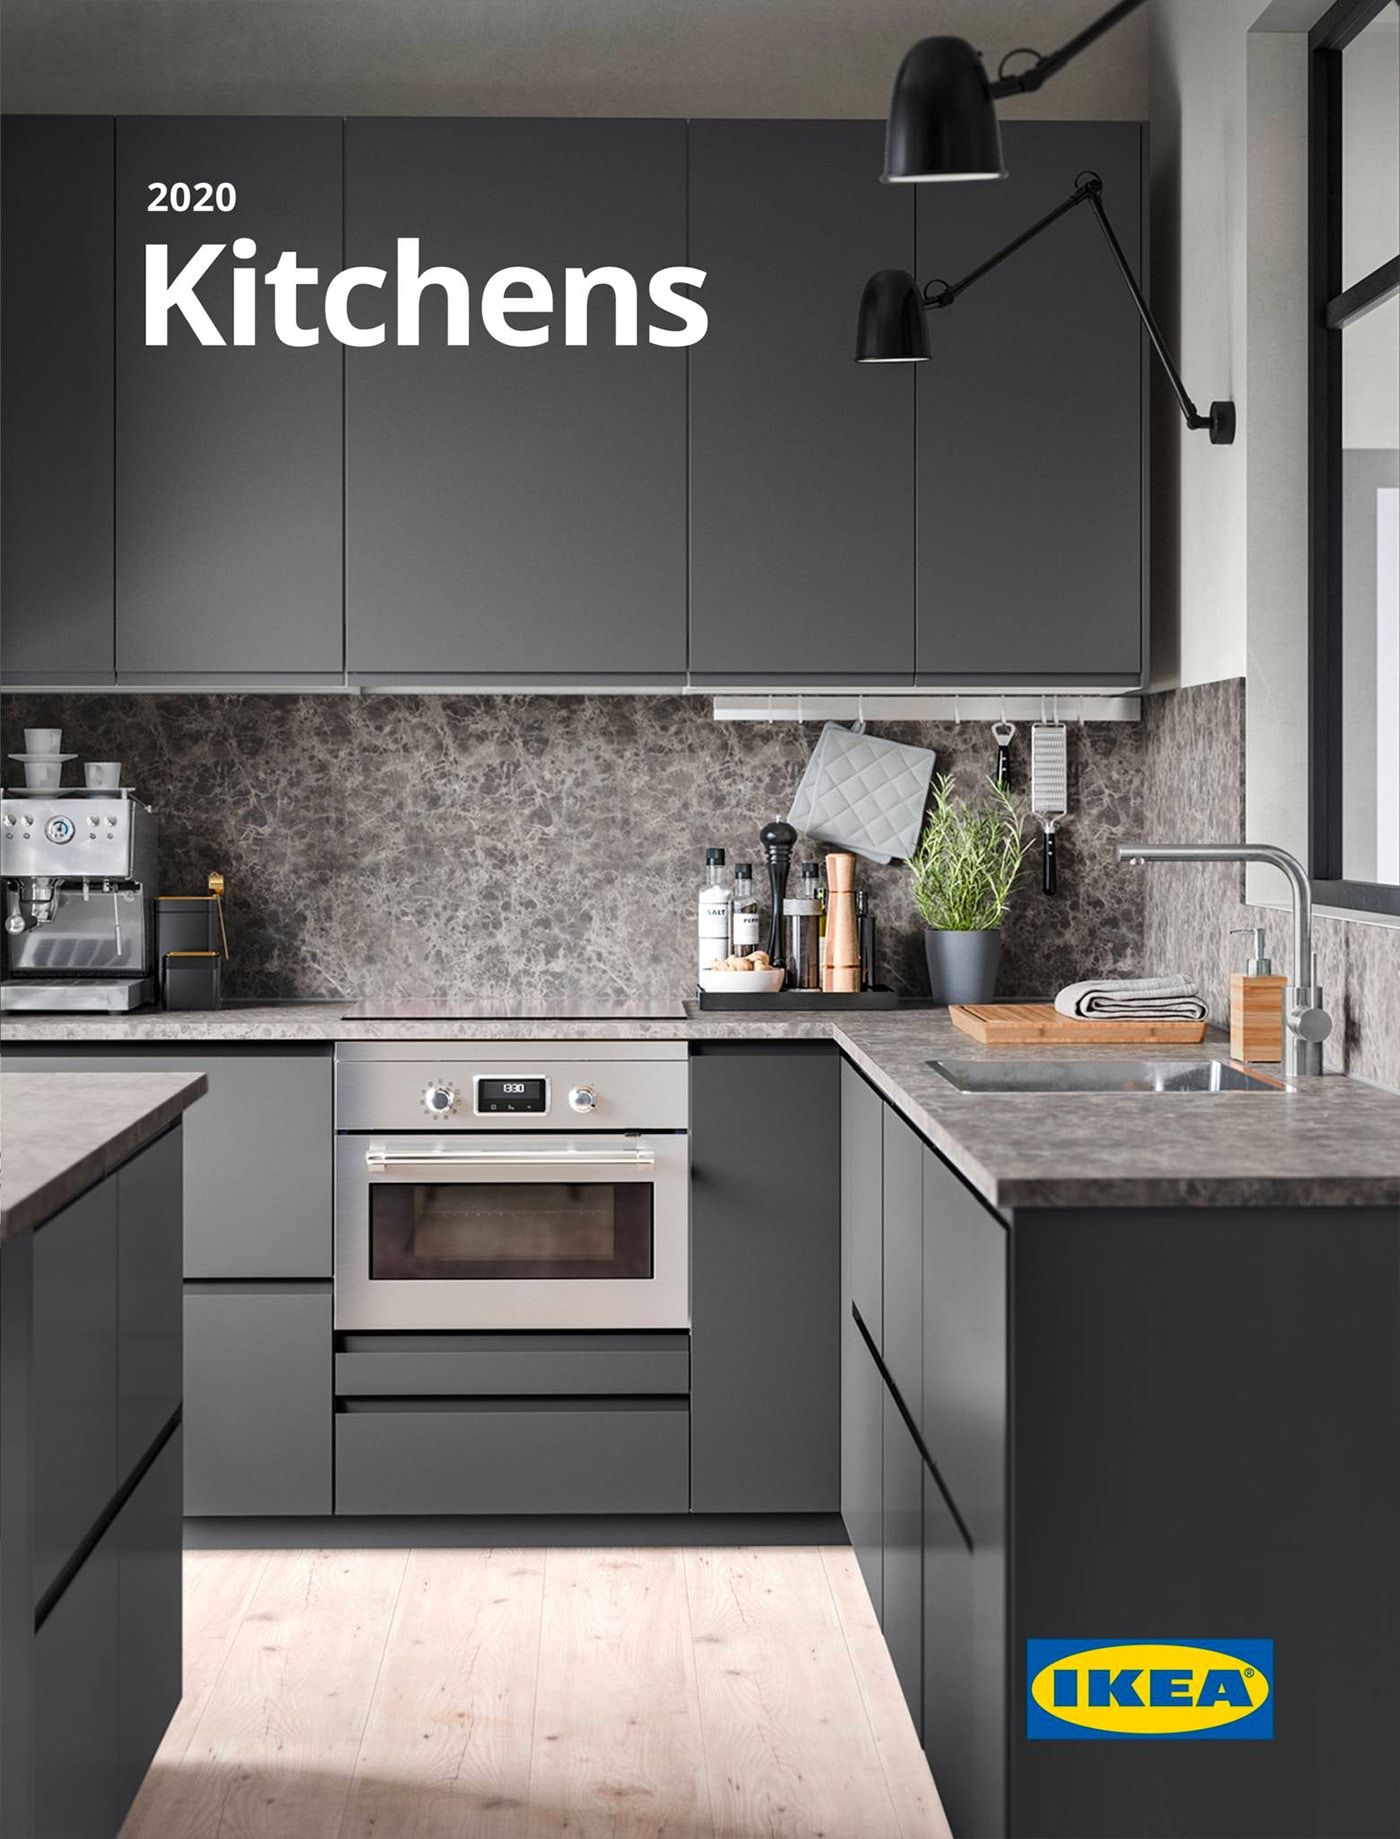 Catalogue And Brochures In 2020 Ikea Kitchen Catalogue Interior Design Kitchen Modern Kitchen Cabinet Design